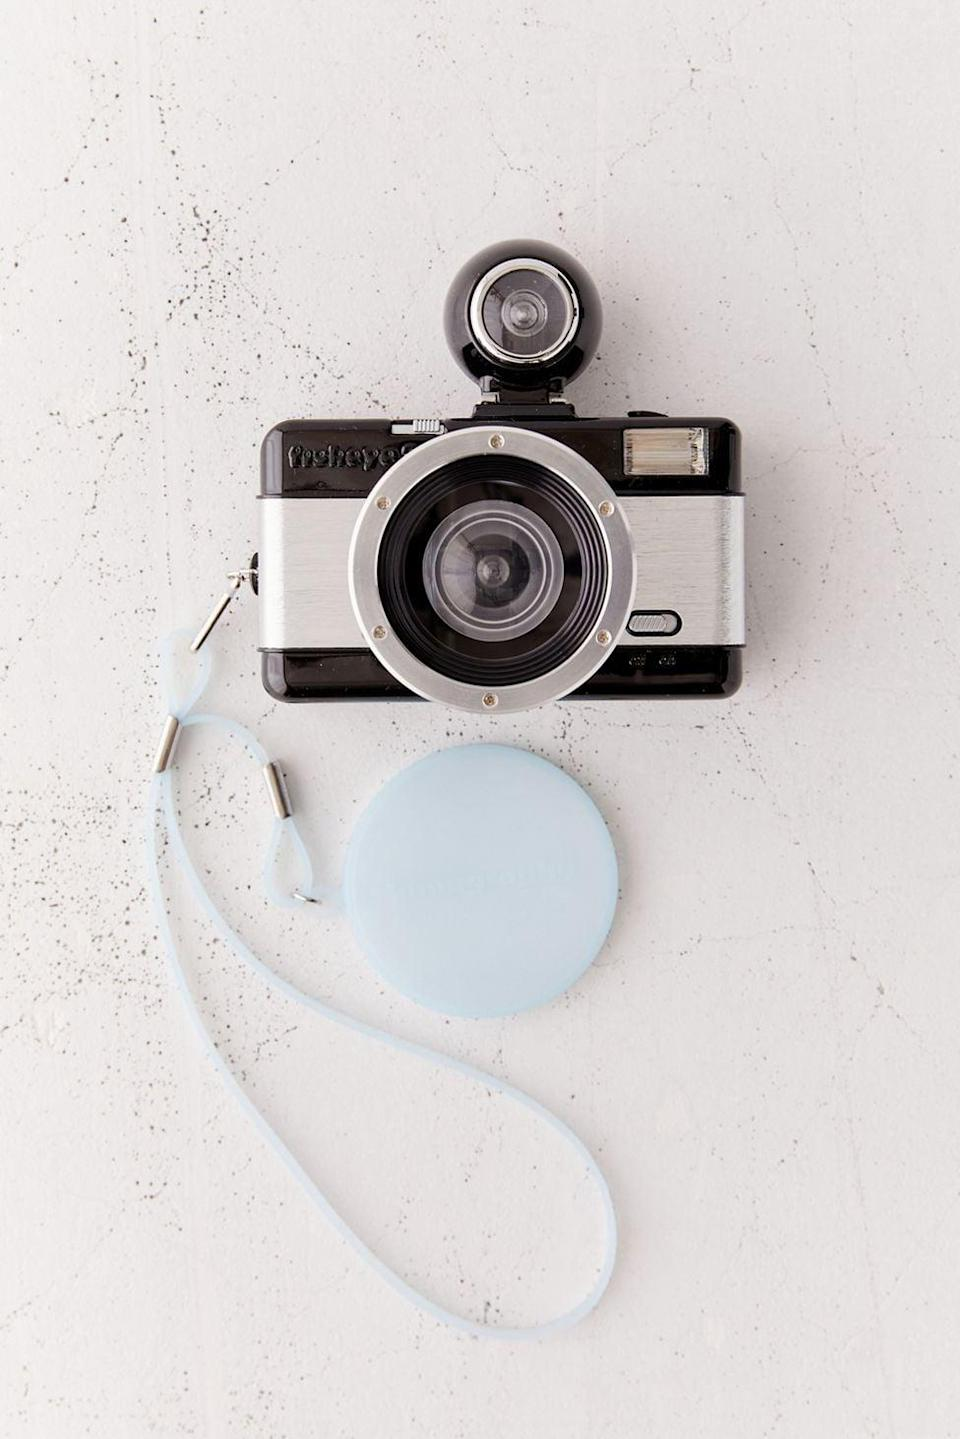 <p>If they love film photographer, get them the <span>Lomography Fisheye 2.0 35mm Camera</span> ($55). It looks cool, and has a unique fisheye feature. </p>